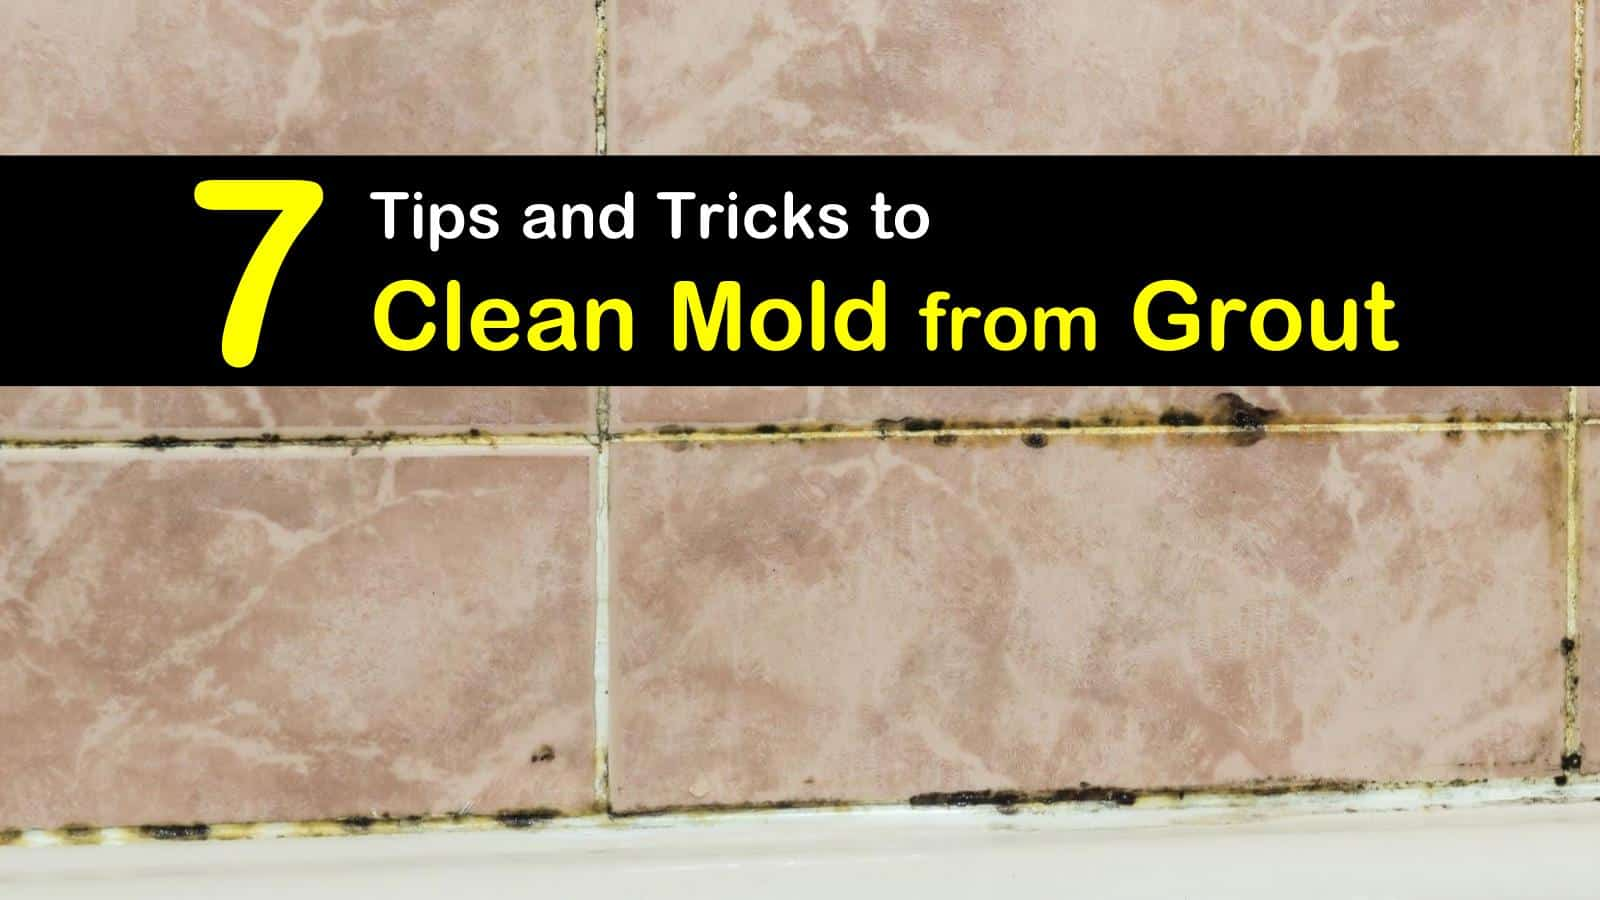 to clean mold from grout